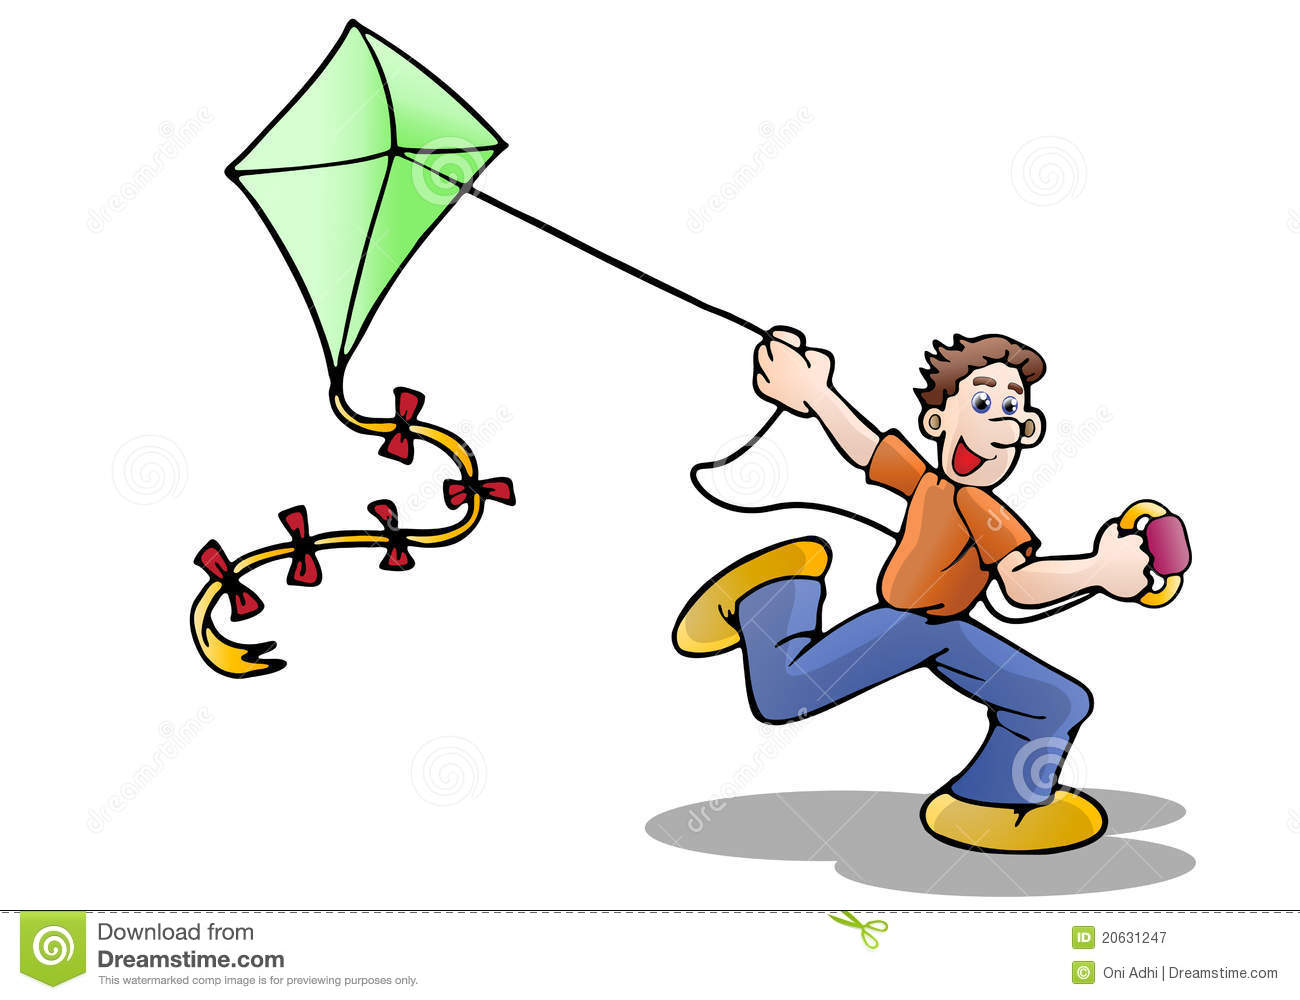 Kite flying clipart free download best kite flying clipart on 1300x1000 kite flying clipart voltagebd Images